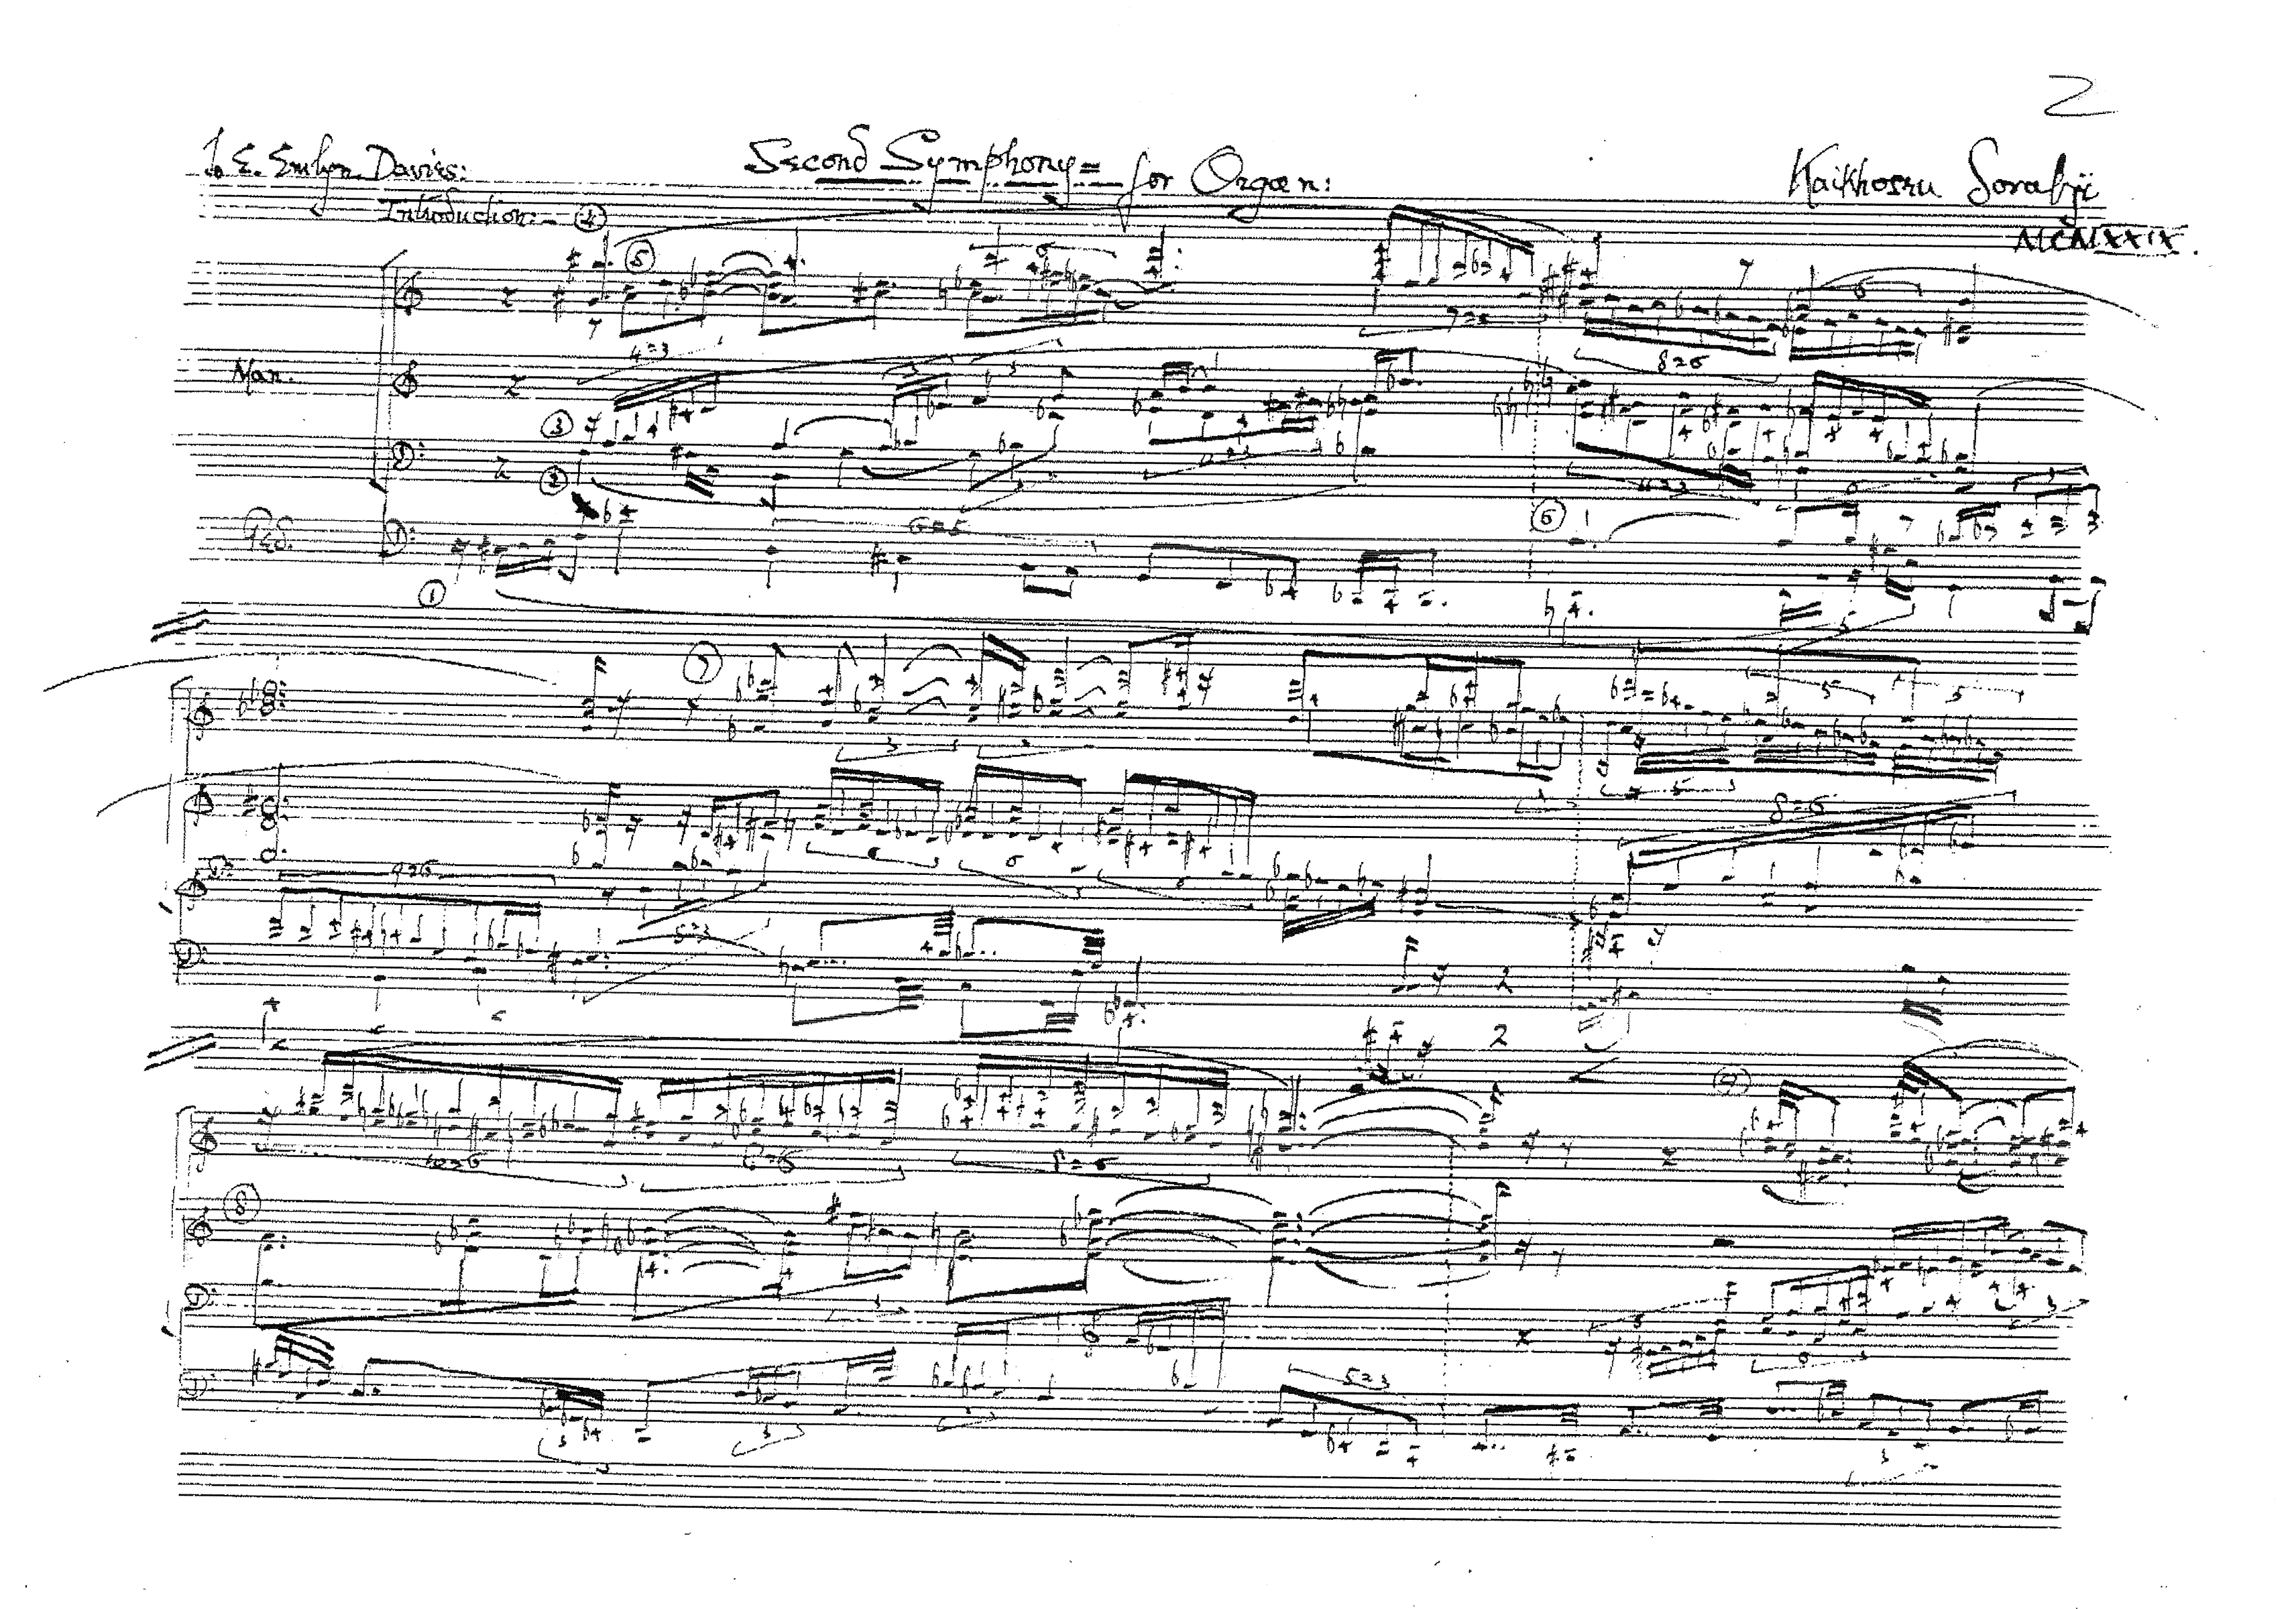 Excerpt from the Manuscript of Sorabji's Organ Symphony No. 2